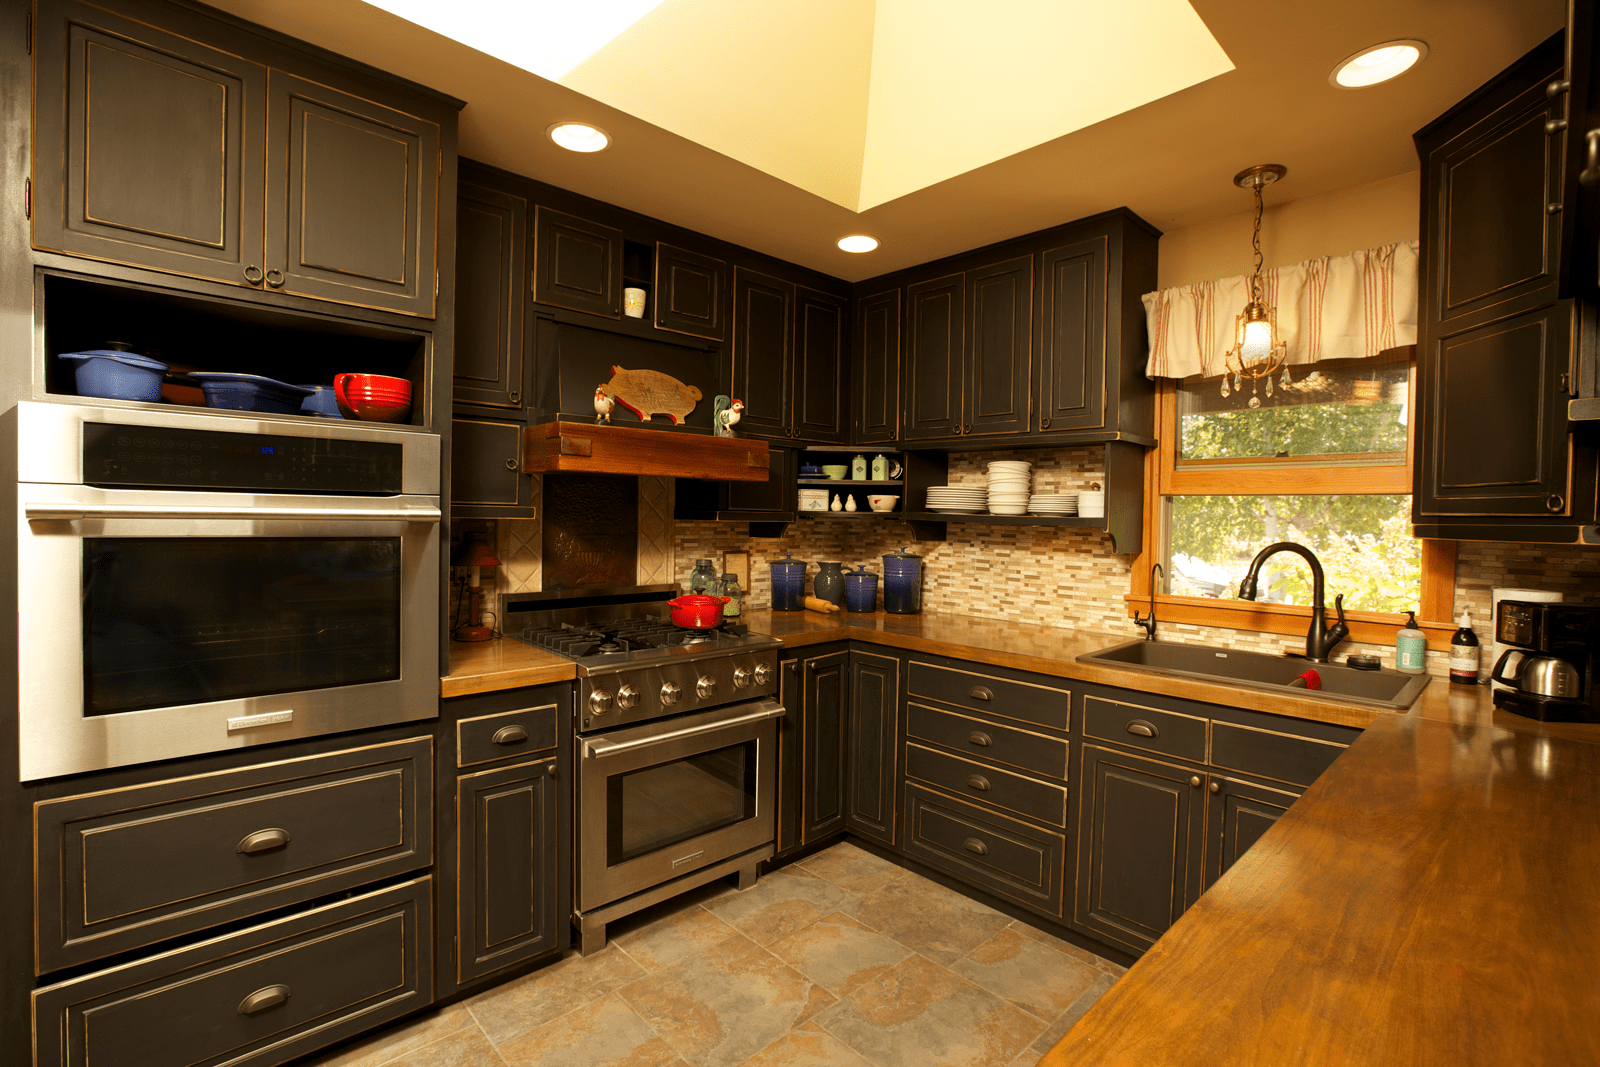 Refinishing Cabinets Vs Replacing Get Your Dream Kitchen